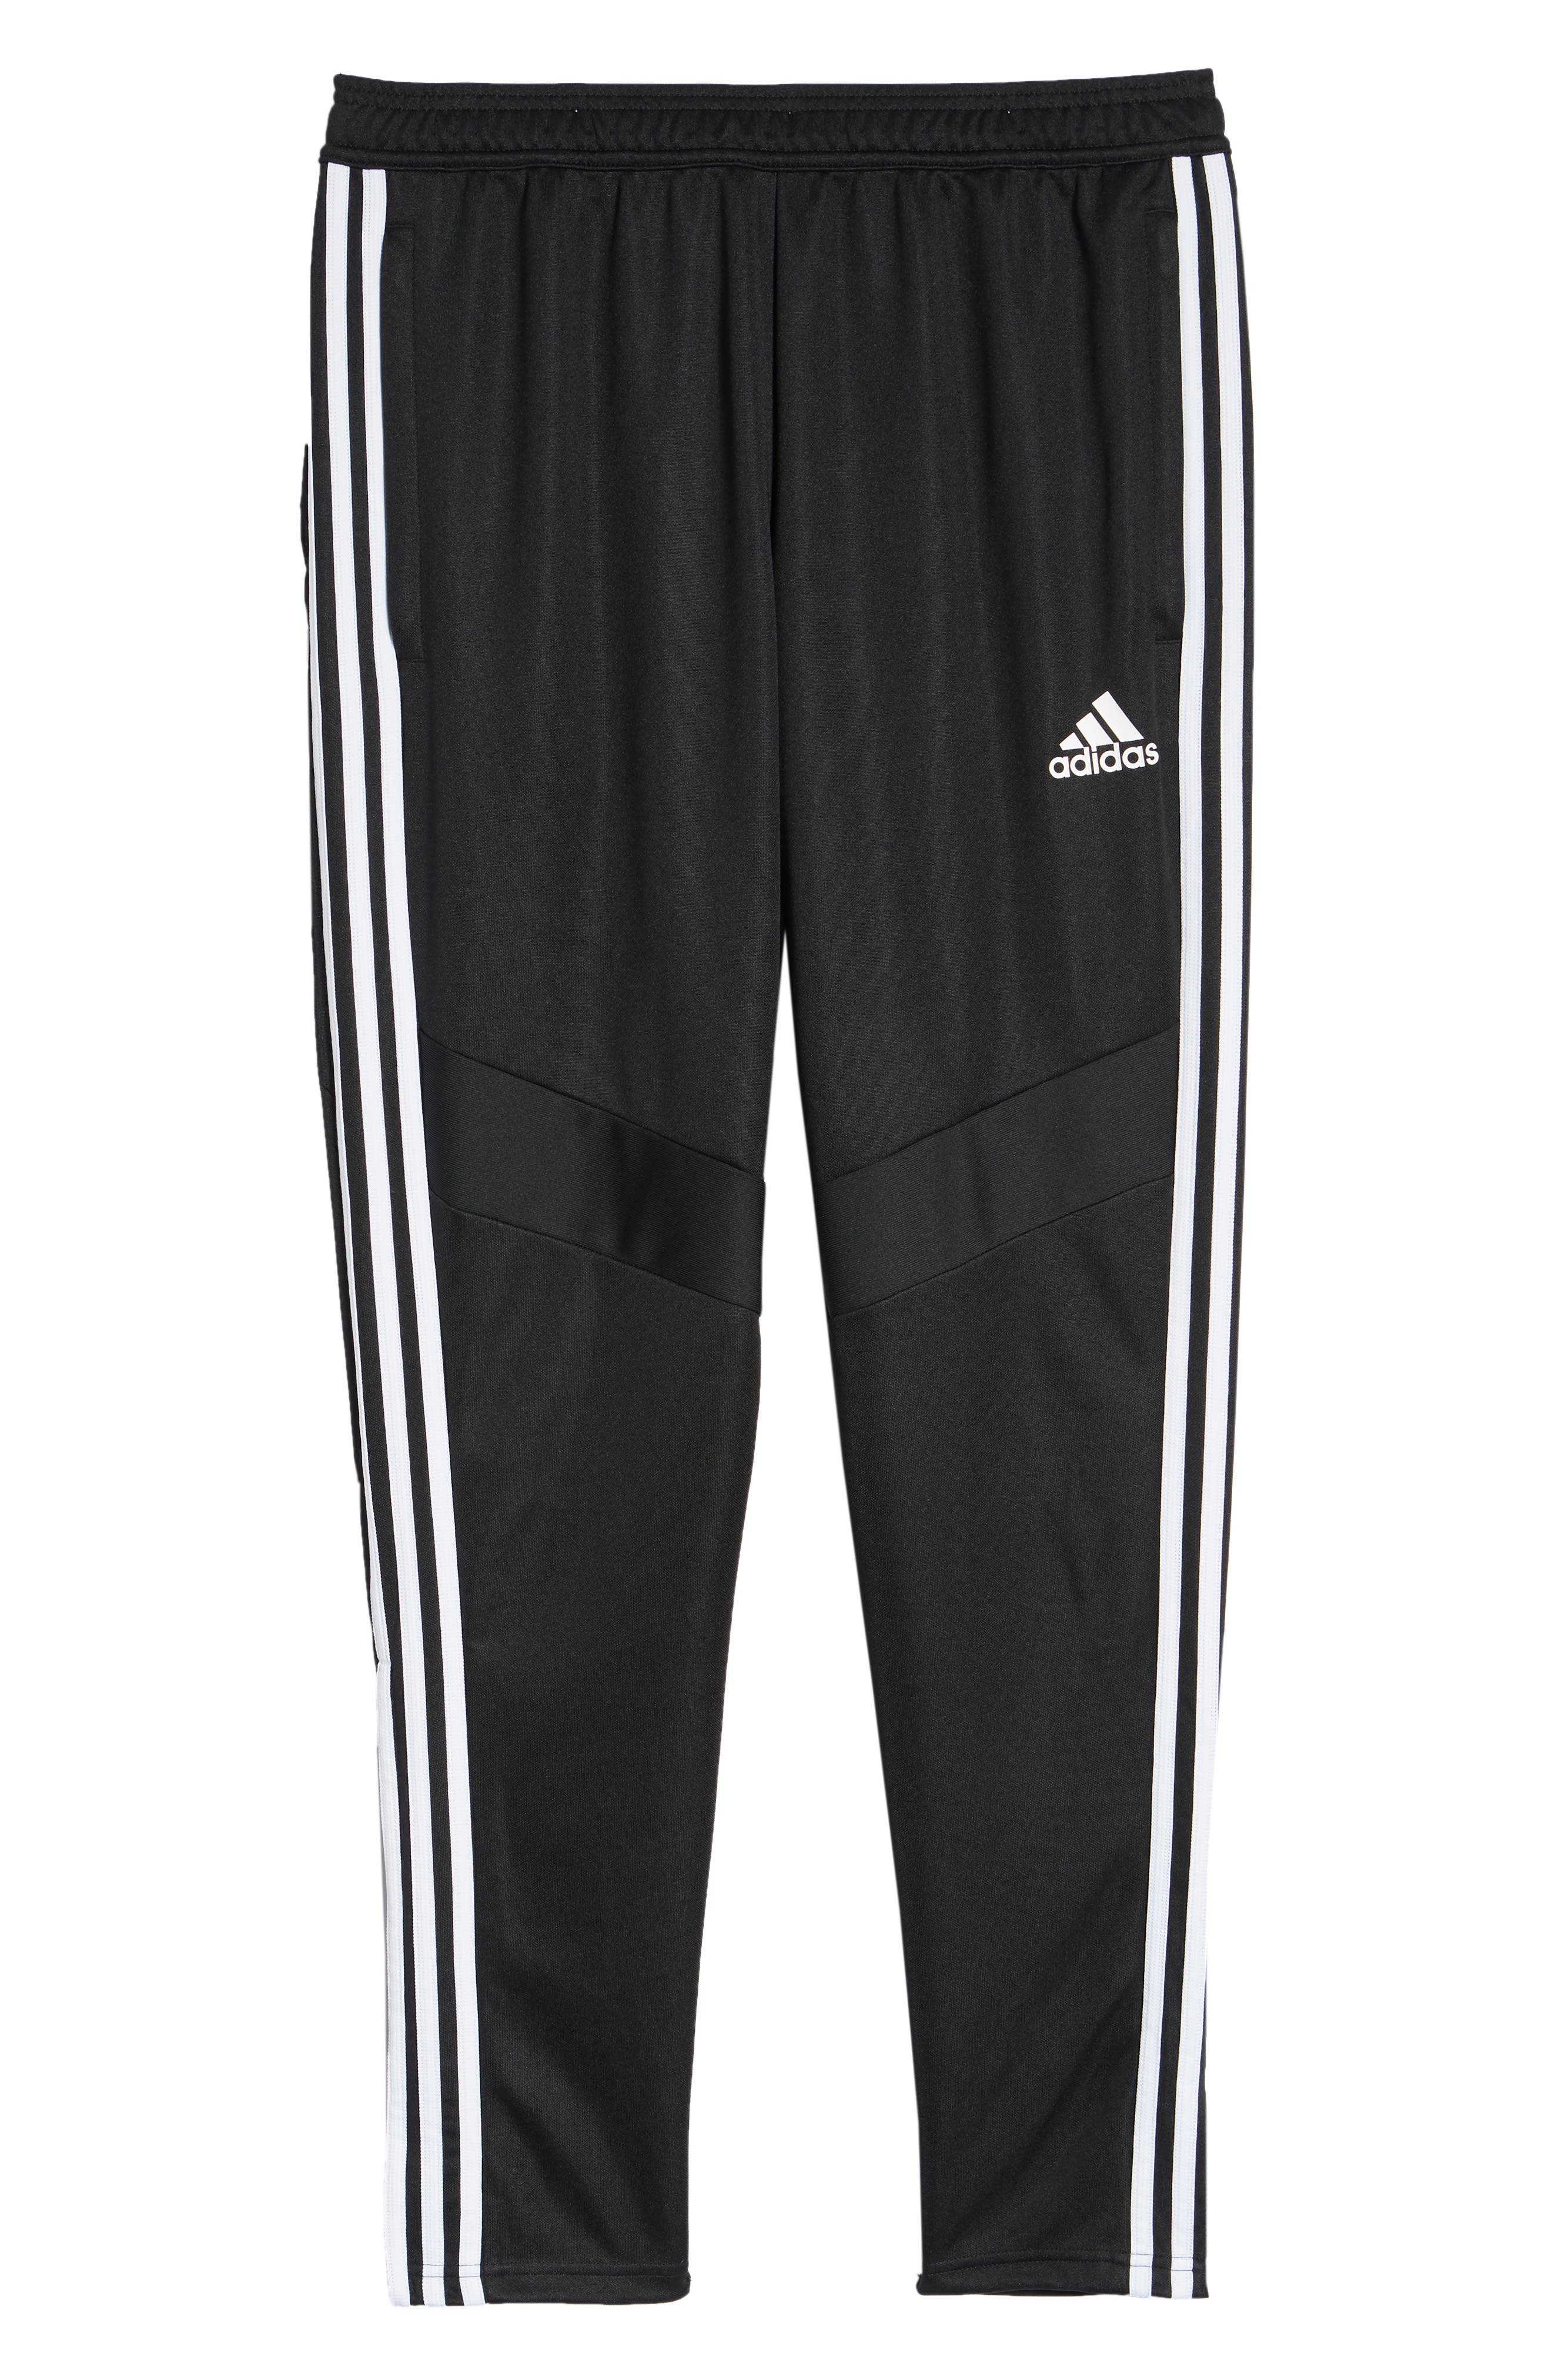 ADIDAS, Tiro Soccer Training Pants, Alternate thumbnail 7, color, BLACK/ WHITE